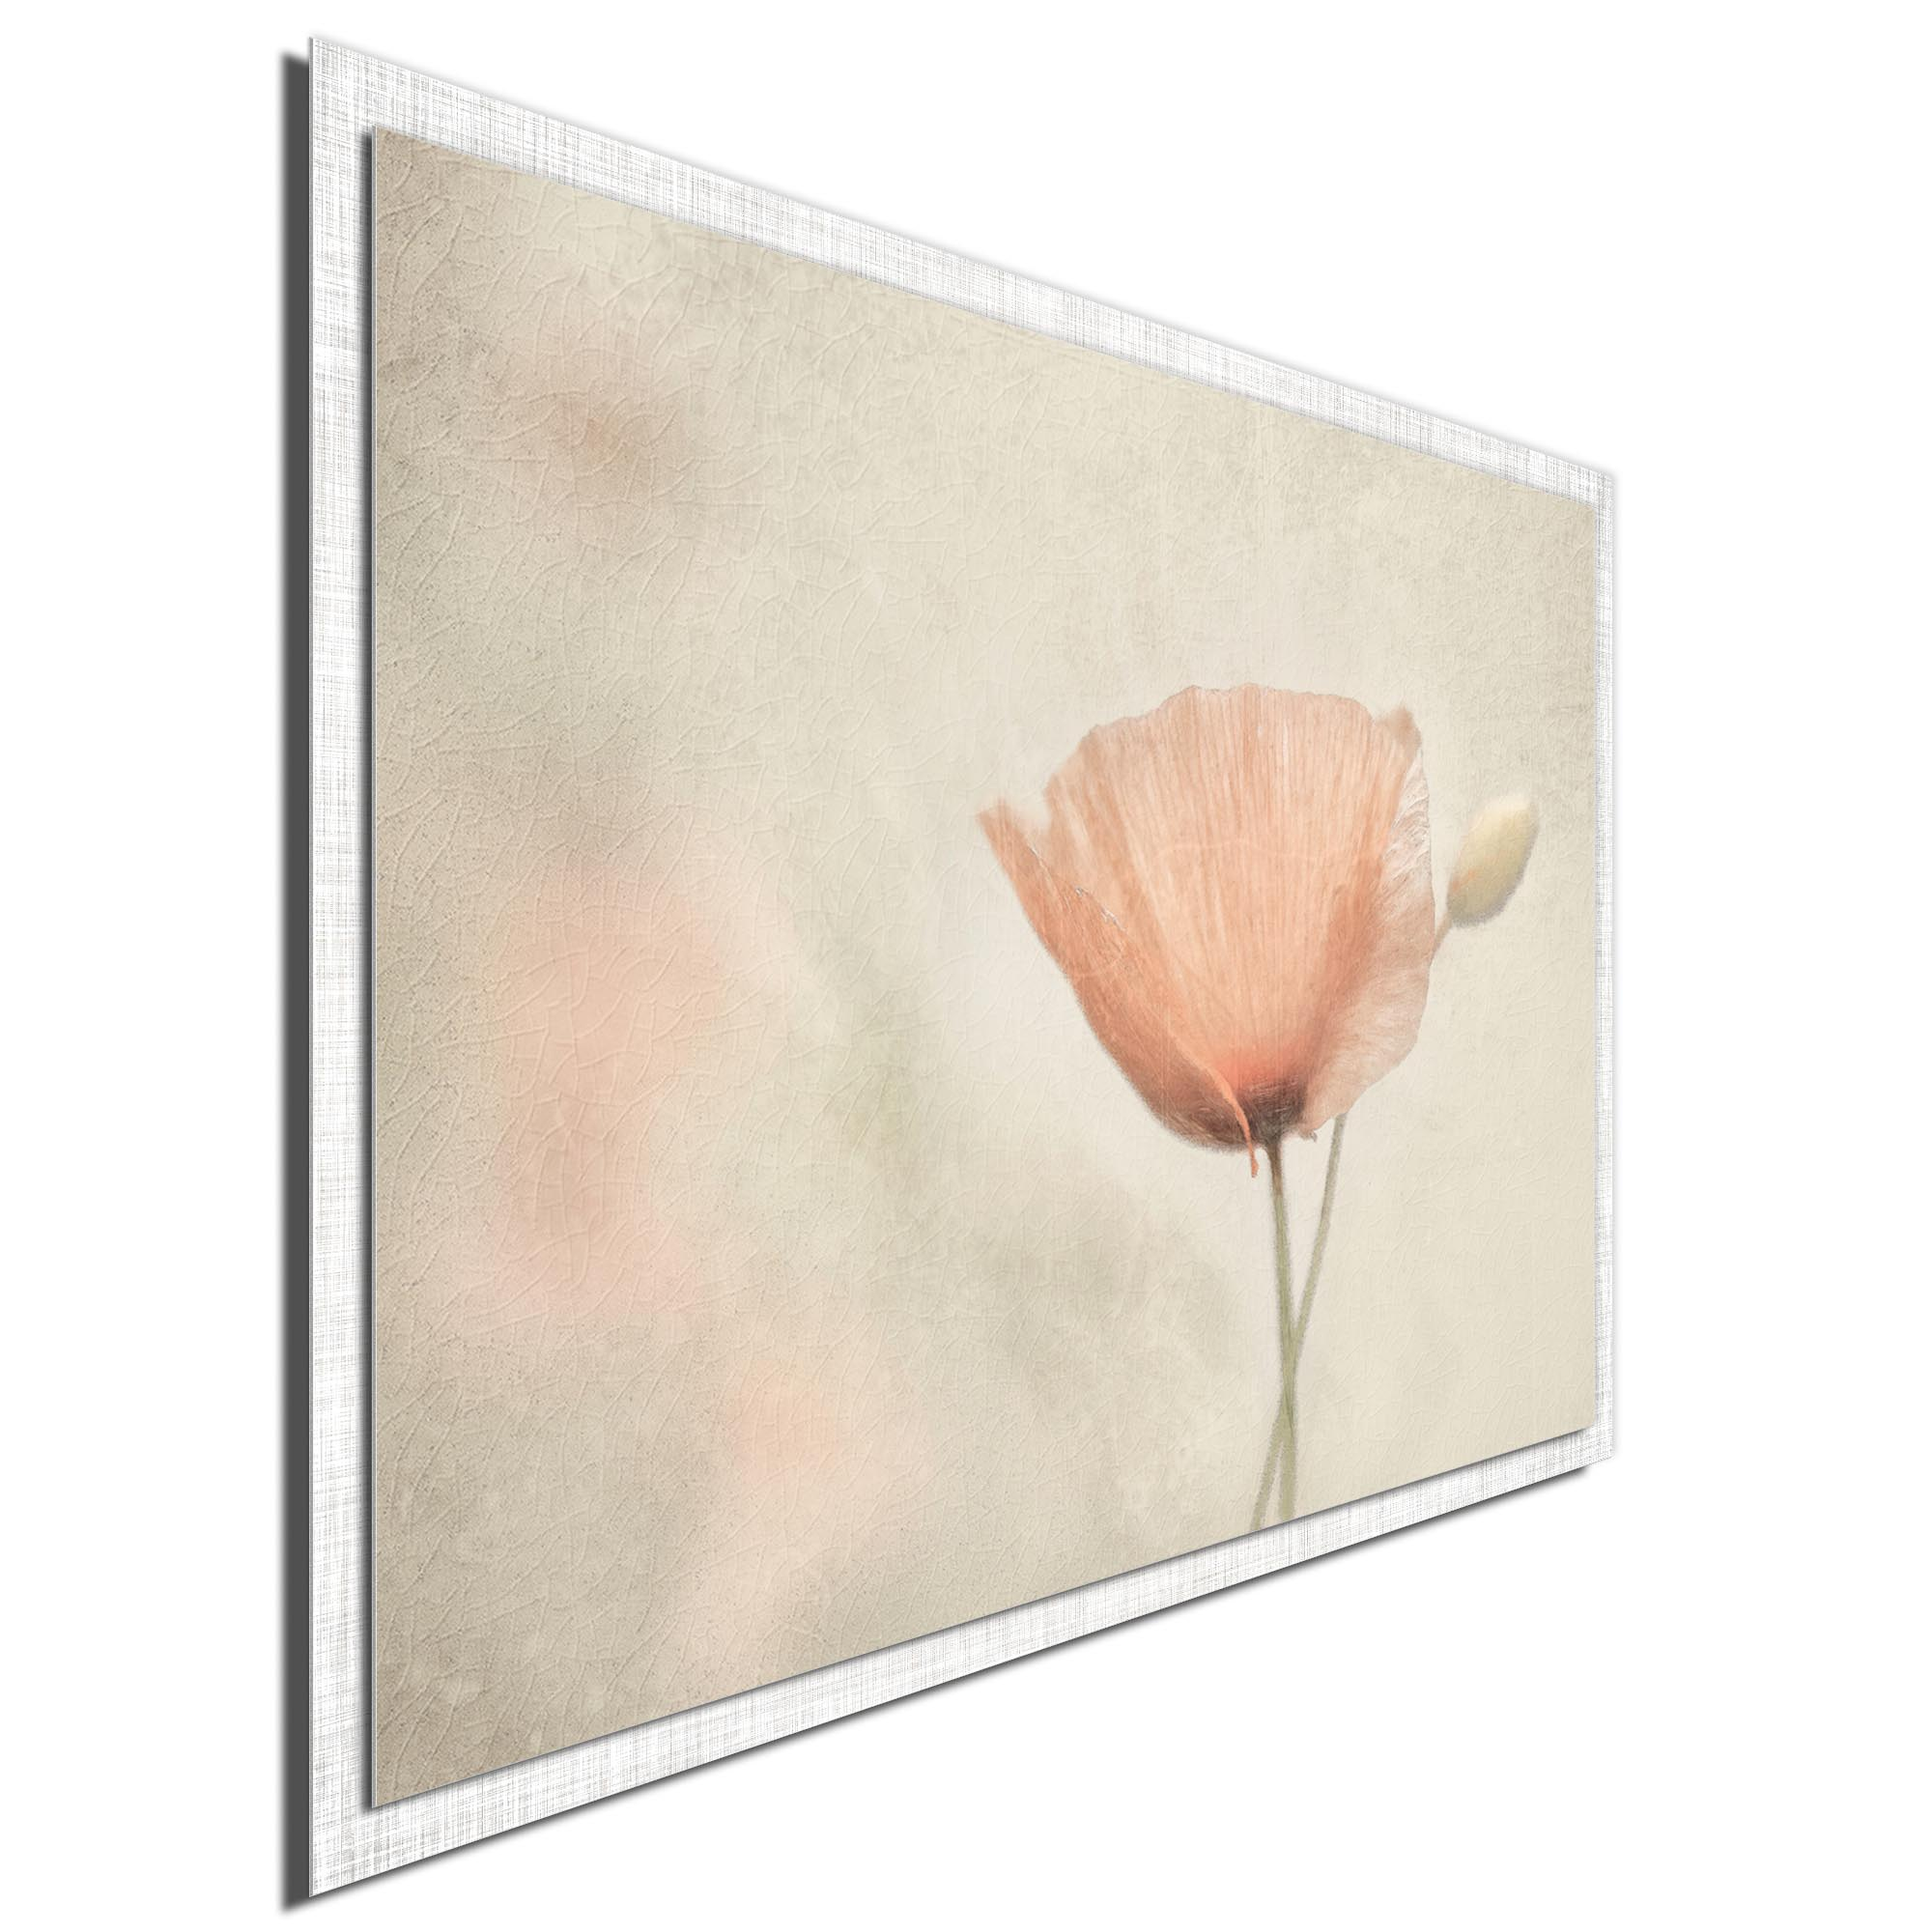 Jewel of Nature by Gilbert Claes - Modern Farmhouse Floral on Metal - Image 2